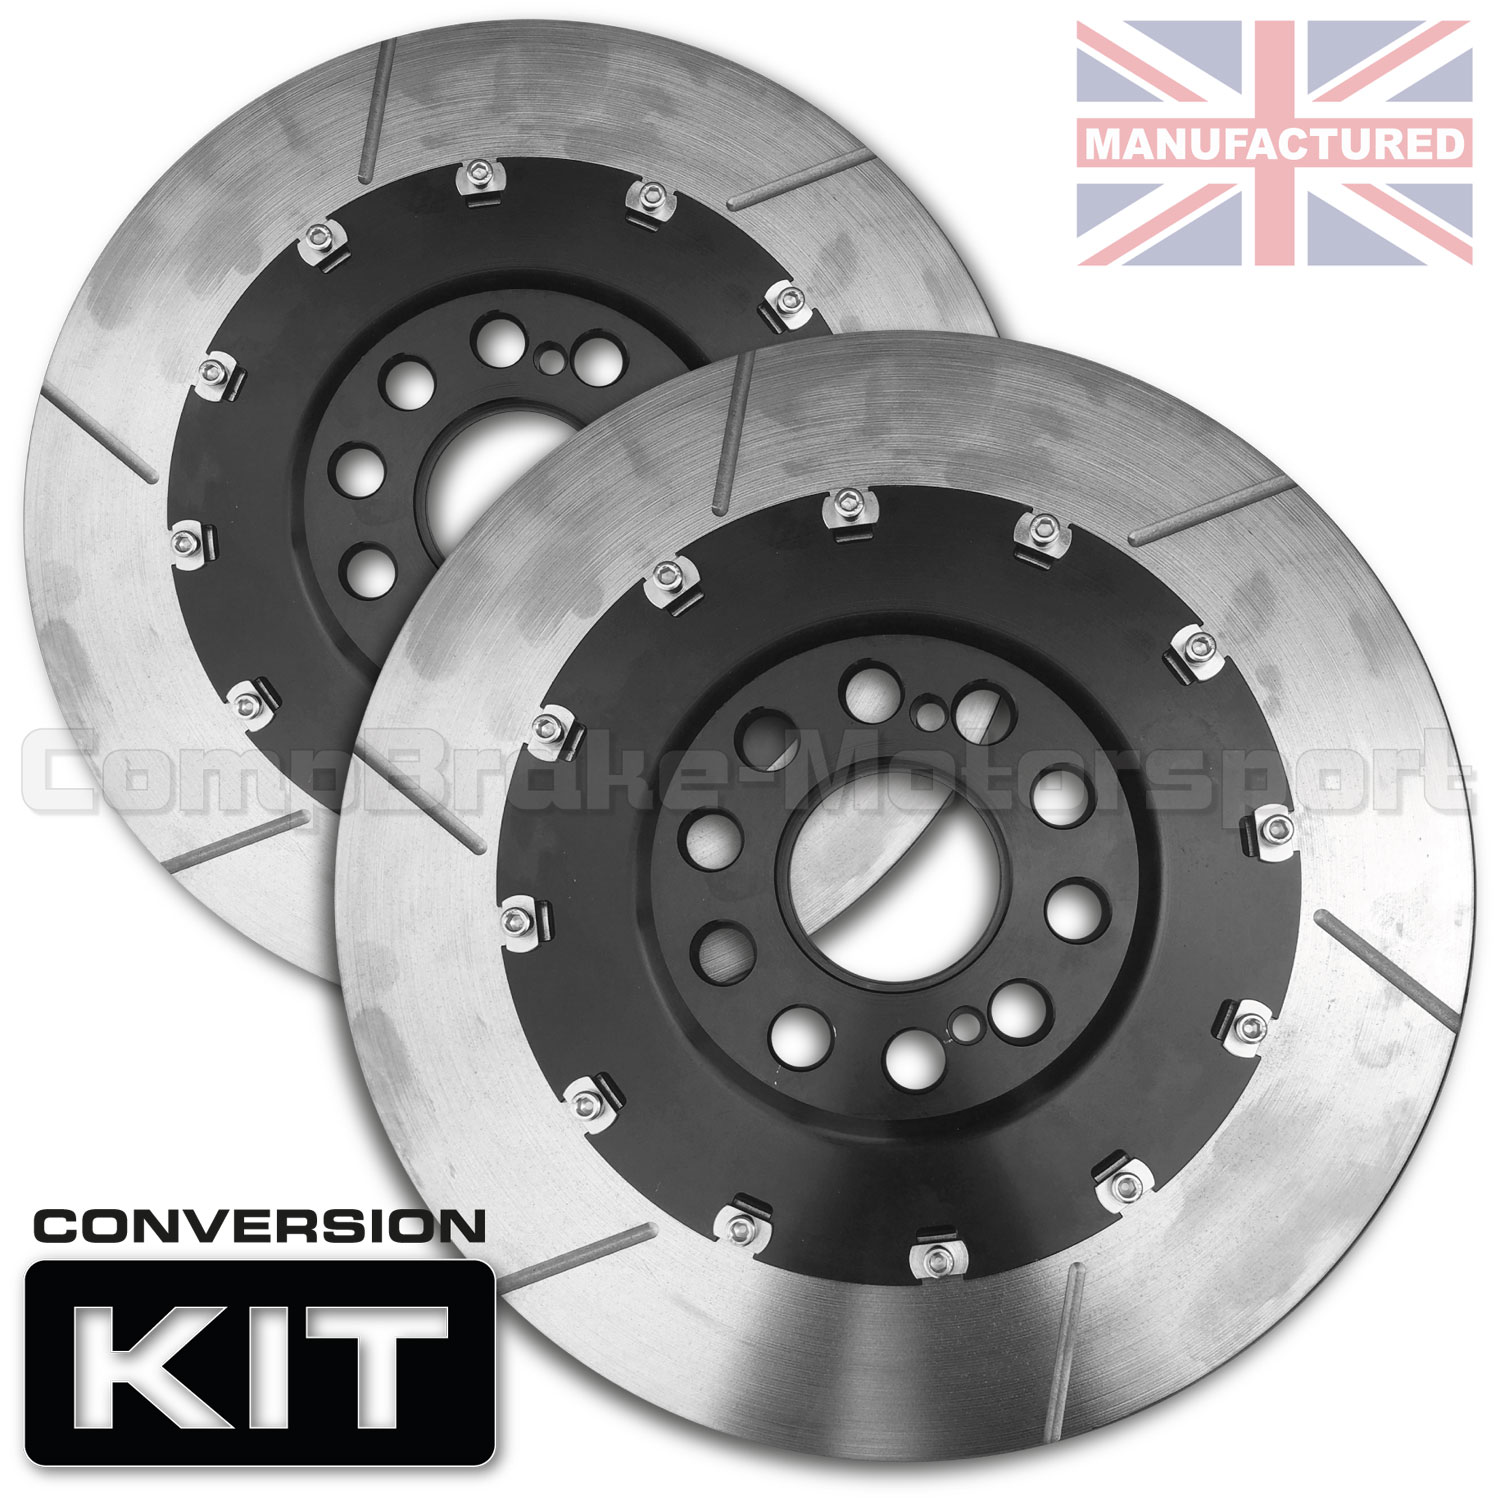 hight resolution of vw polo s2000 355 x 28mm front 2 piece floating brake disc conversion kit bell rotor combo pair 2 piece disc conversions vw polo www compbrake com